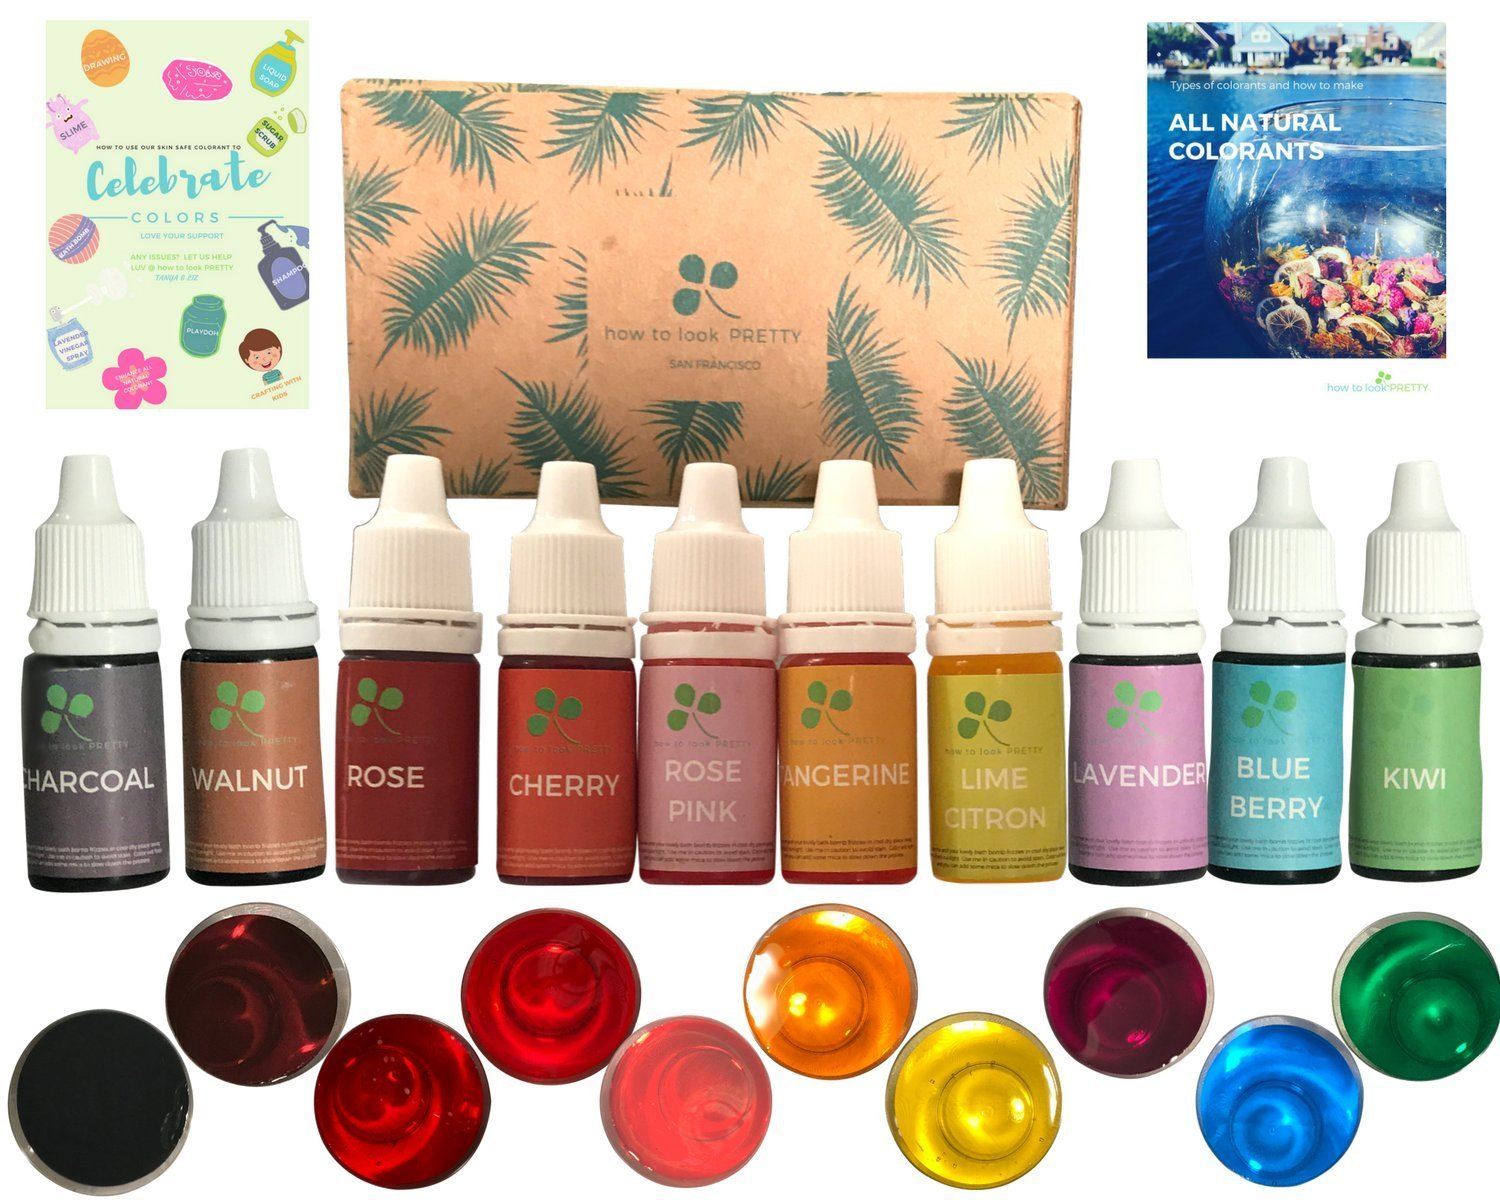 10 color Skin Safe Food Grade Soap Dye - Bath Bomb, Slime, Playdoh Making. BONUS eGuides - How to All Natural Colorant and Coloring Ideas with Kids using Soap Supplies Kit